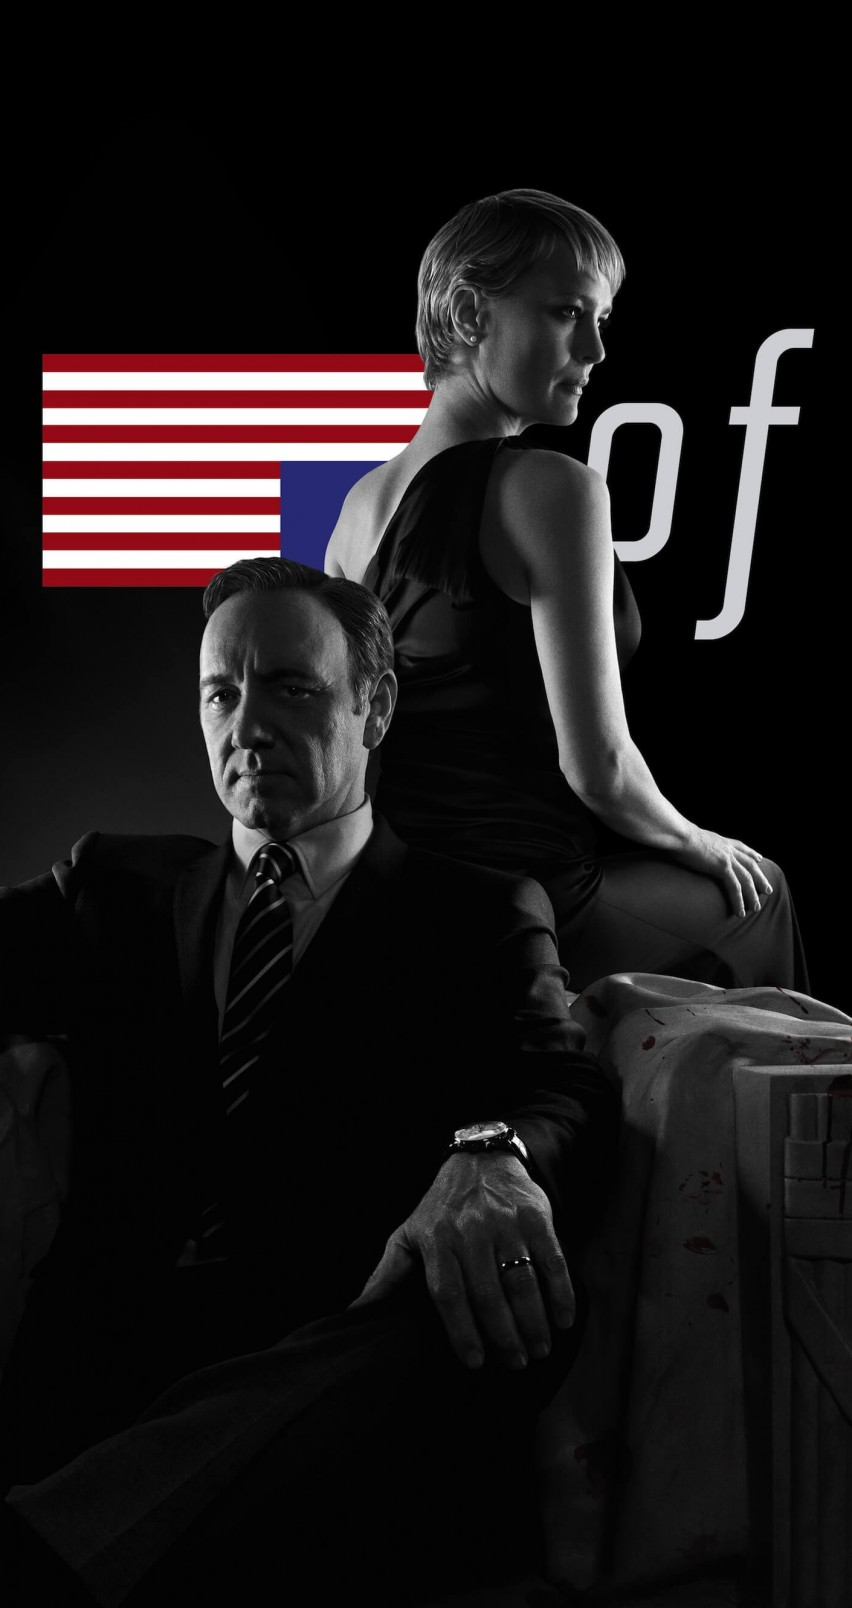 Download House Of Cards Black White Hd Wallpaper For Iphone 6